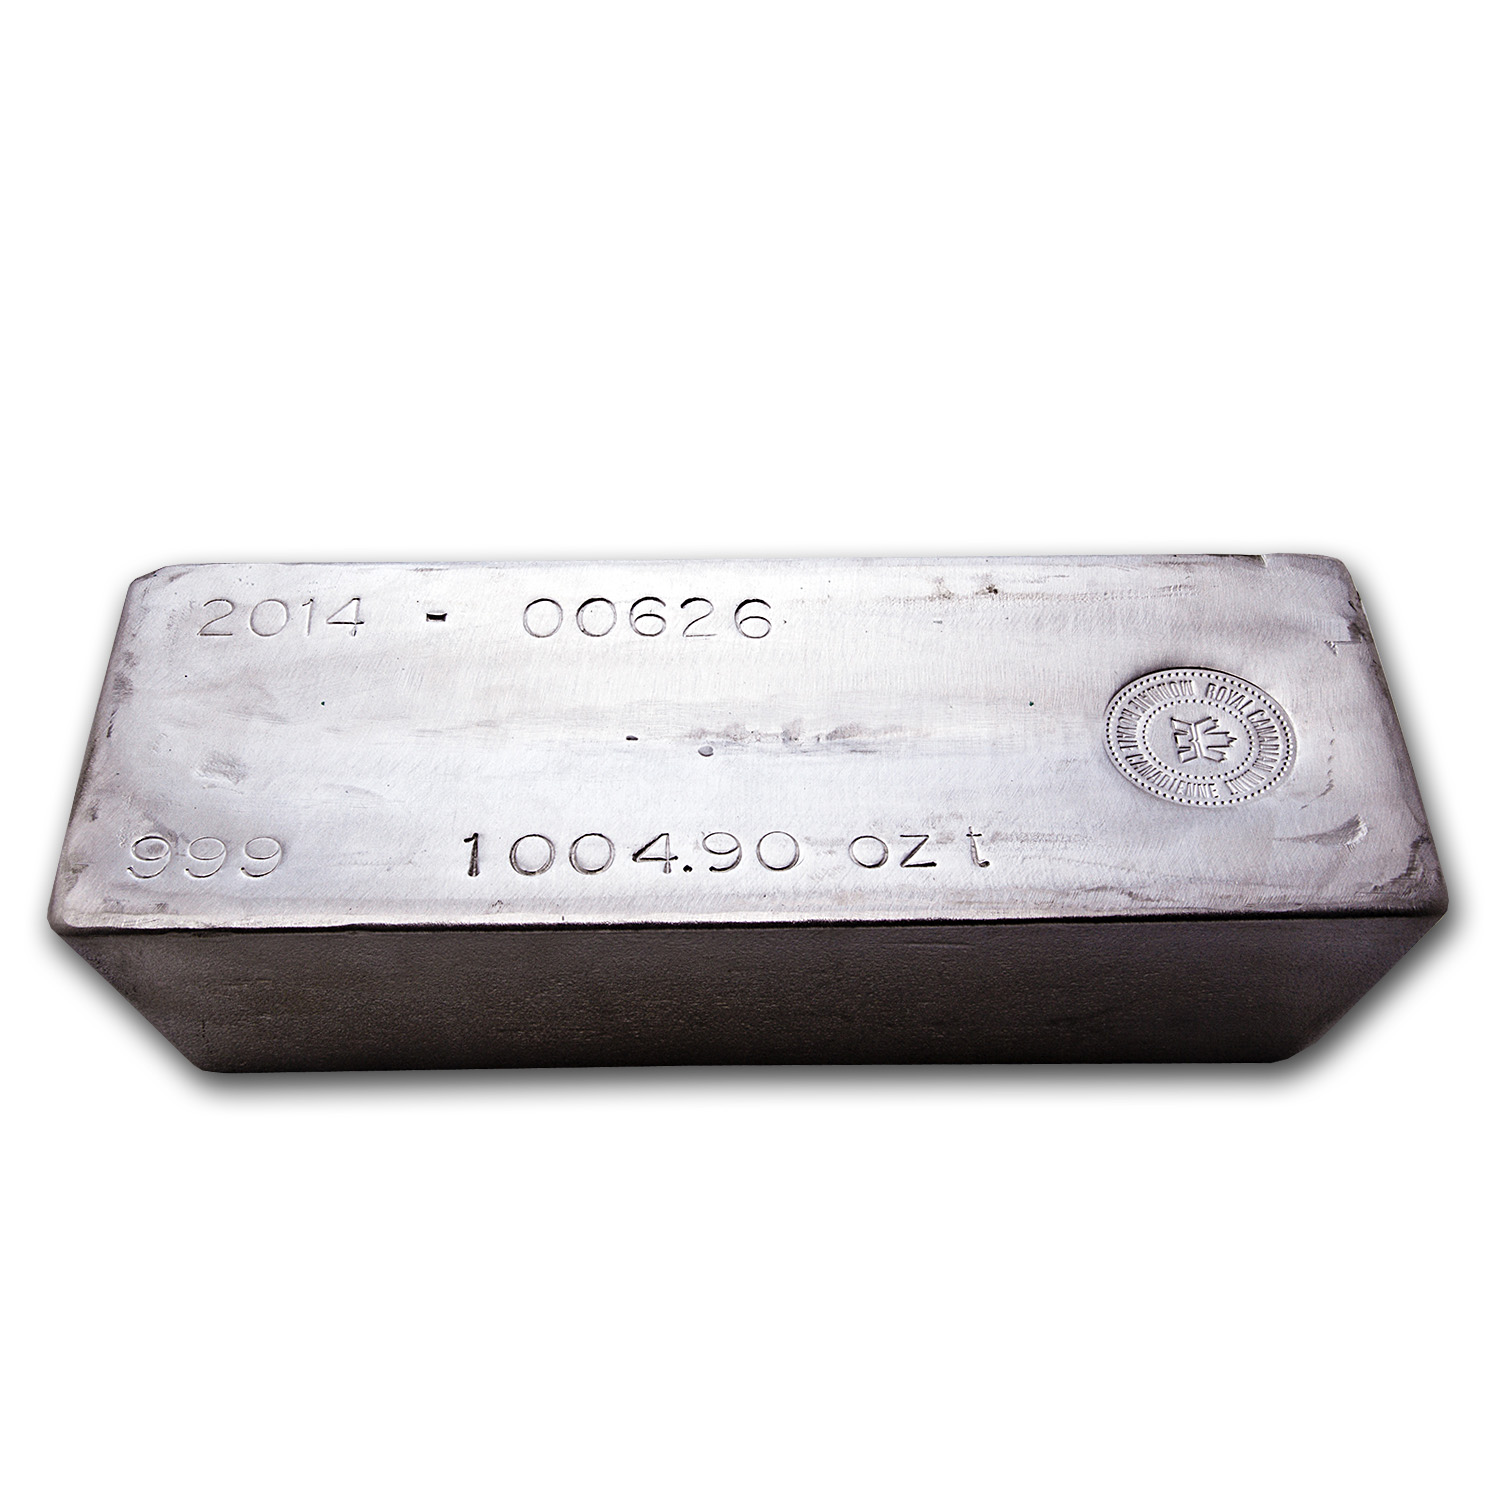 992.60 oz Silver Bar - Royal Canadian Mint (COMEX Deliverable)